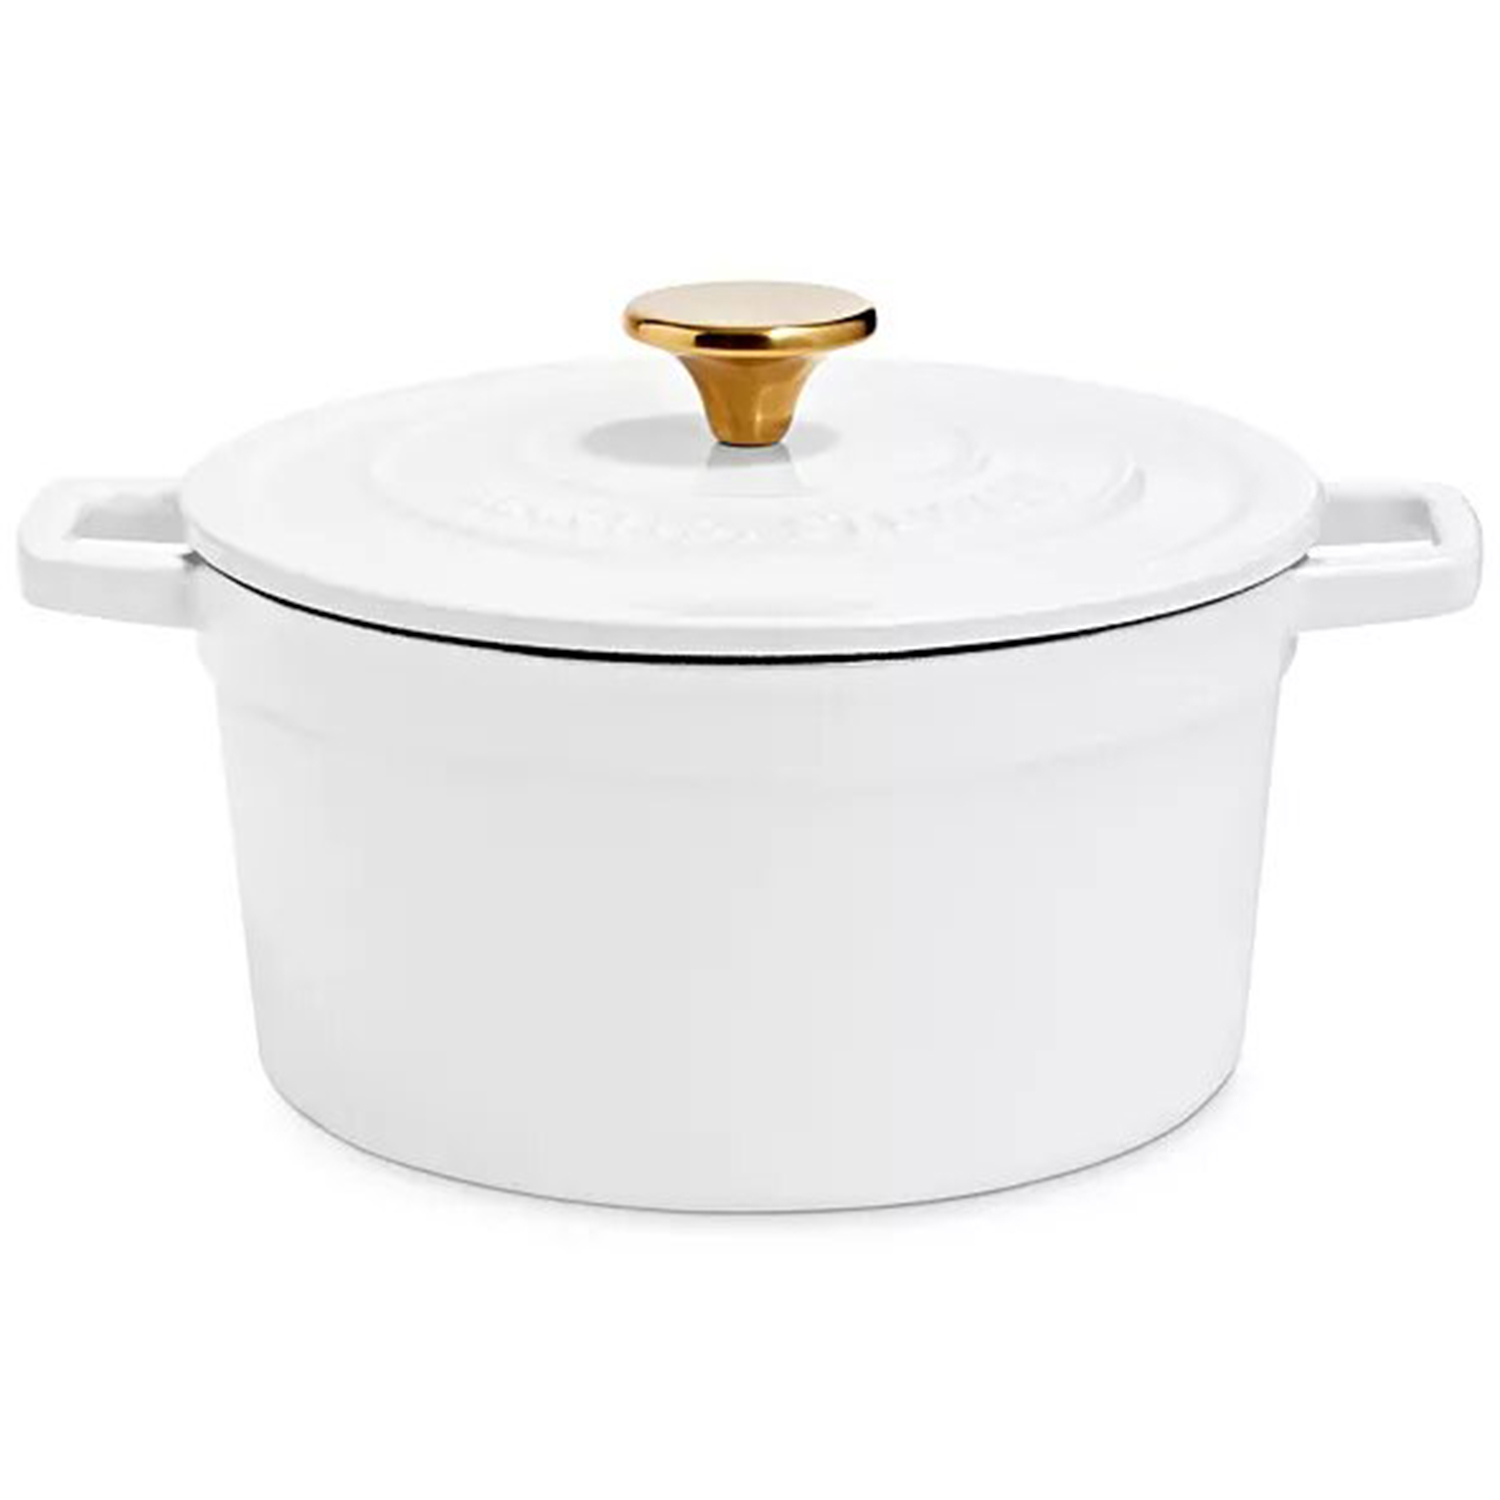 Martha Stewart Collection 4-Qt. Enameled Cast Iron Round Dutch Oven